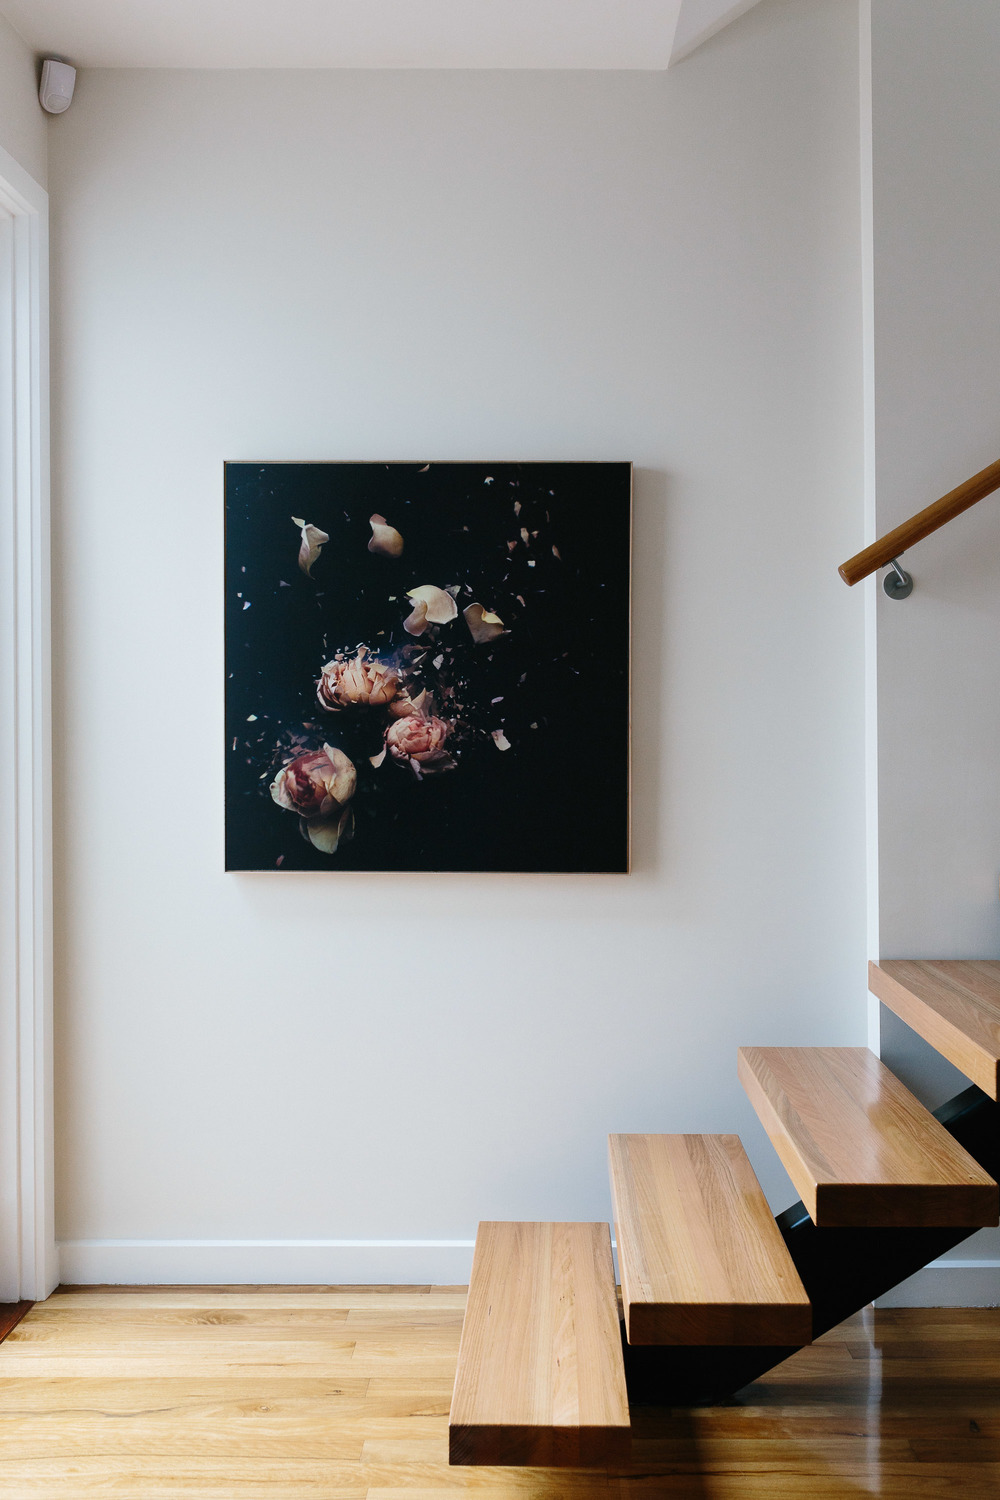 Marnie Hawson, Melbourne interior photographer, for The Artwork Stylist